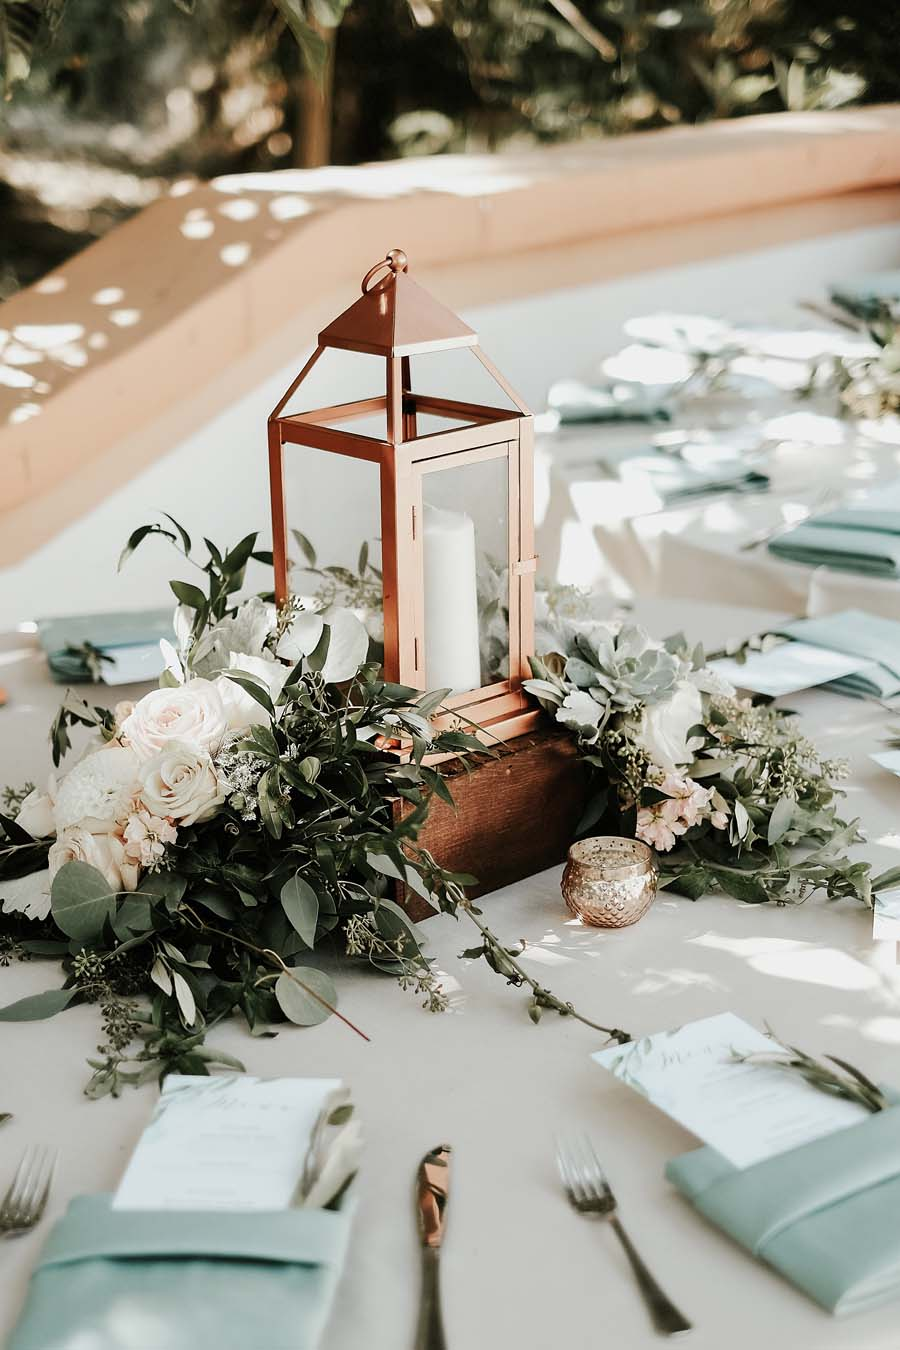 stylishdetailsevents.com | Rancho Las Lomas Weddings | Stylish Details Planning and Event Design | Dillon Phommasa Photography | Southern California and Hawaii Wedding Planner  4 (2).jpg